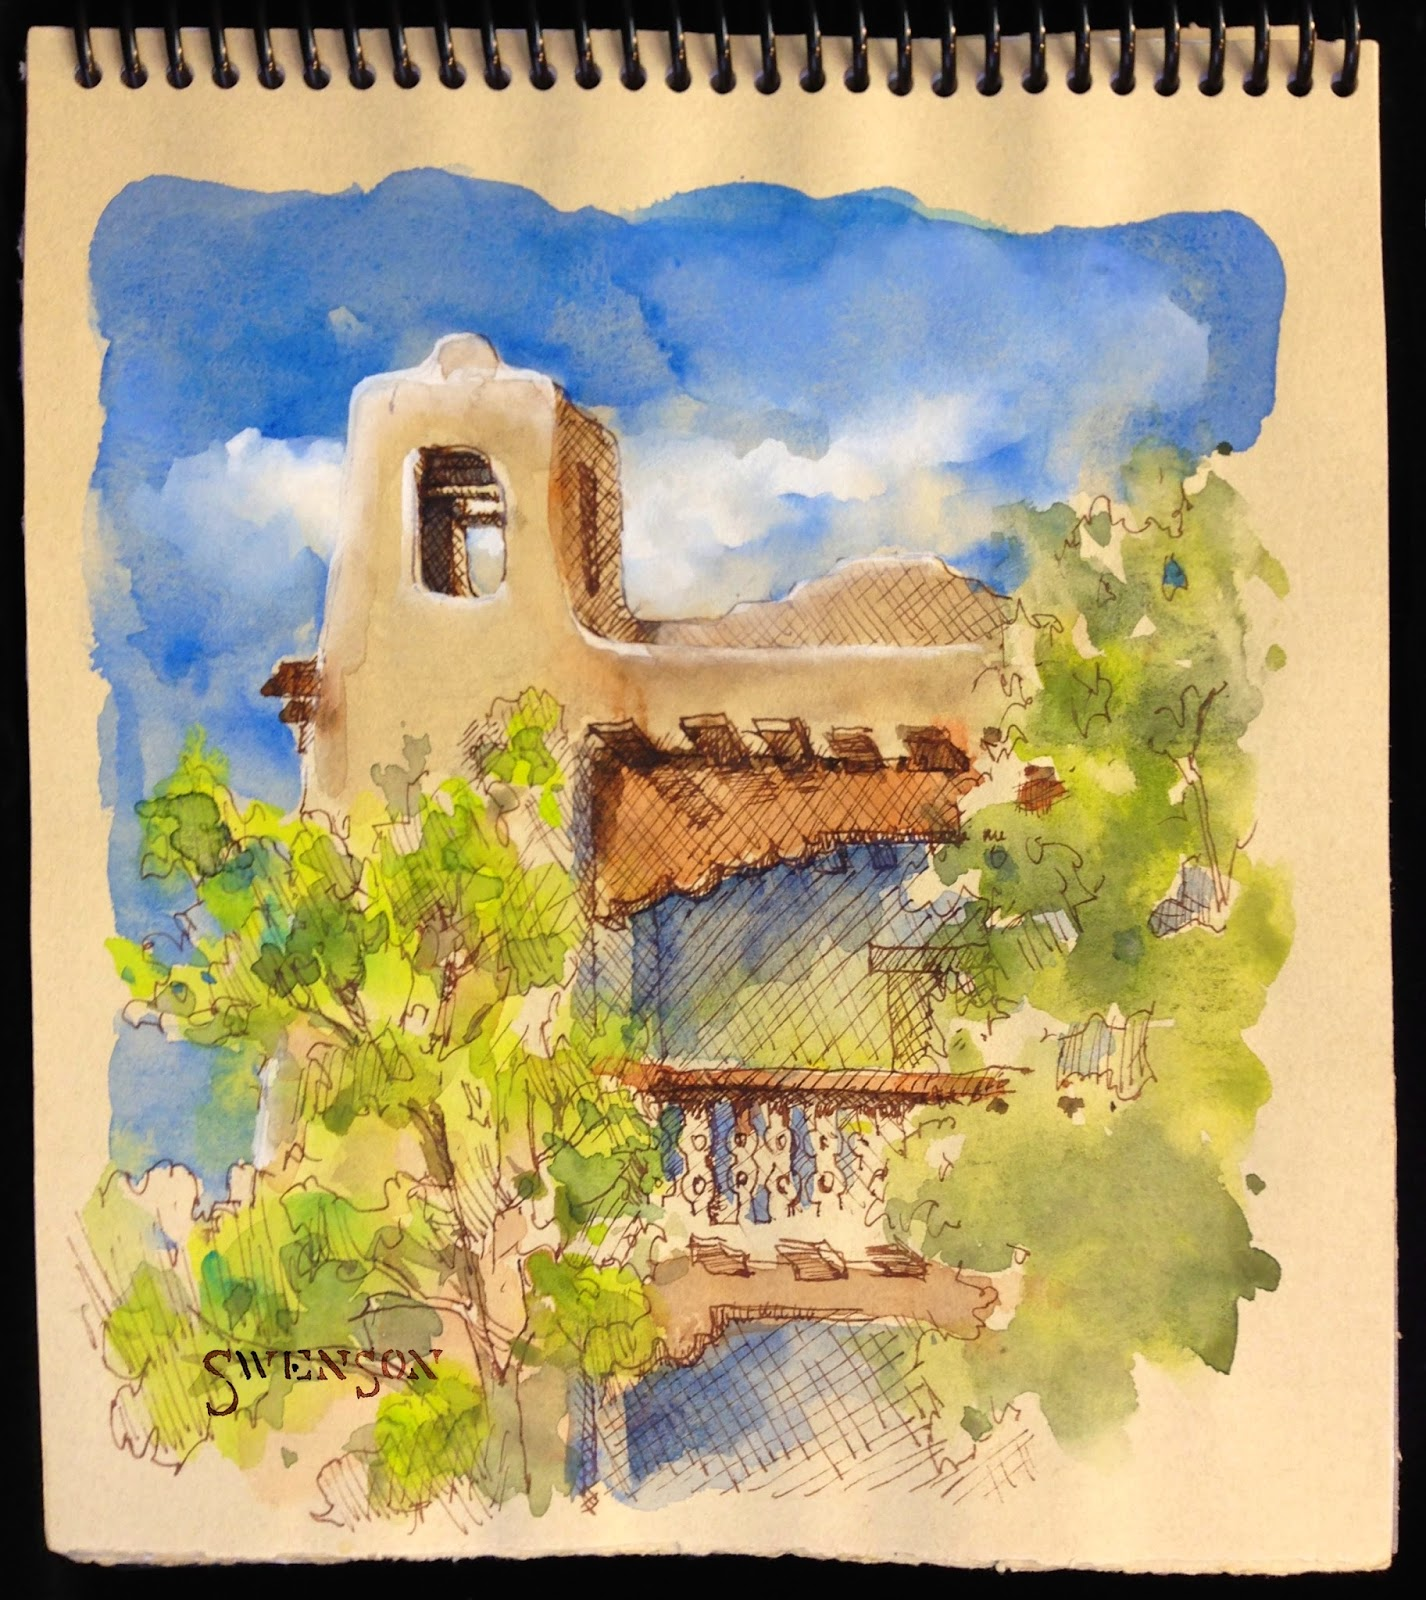 I sketch and paint on papers not intended for watercolor. For example, I've found that the Canson Mi-Teintes pastel papers handle watercolor nicely, ...